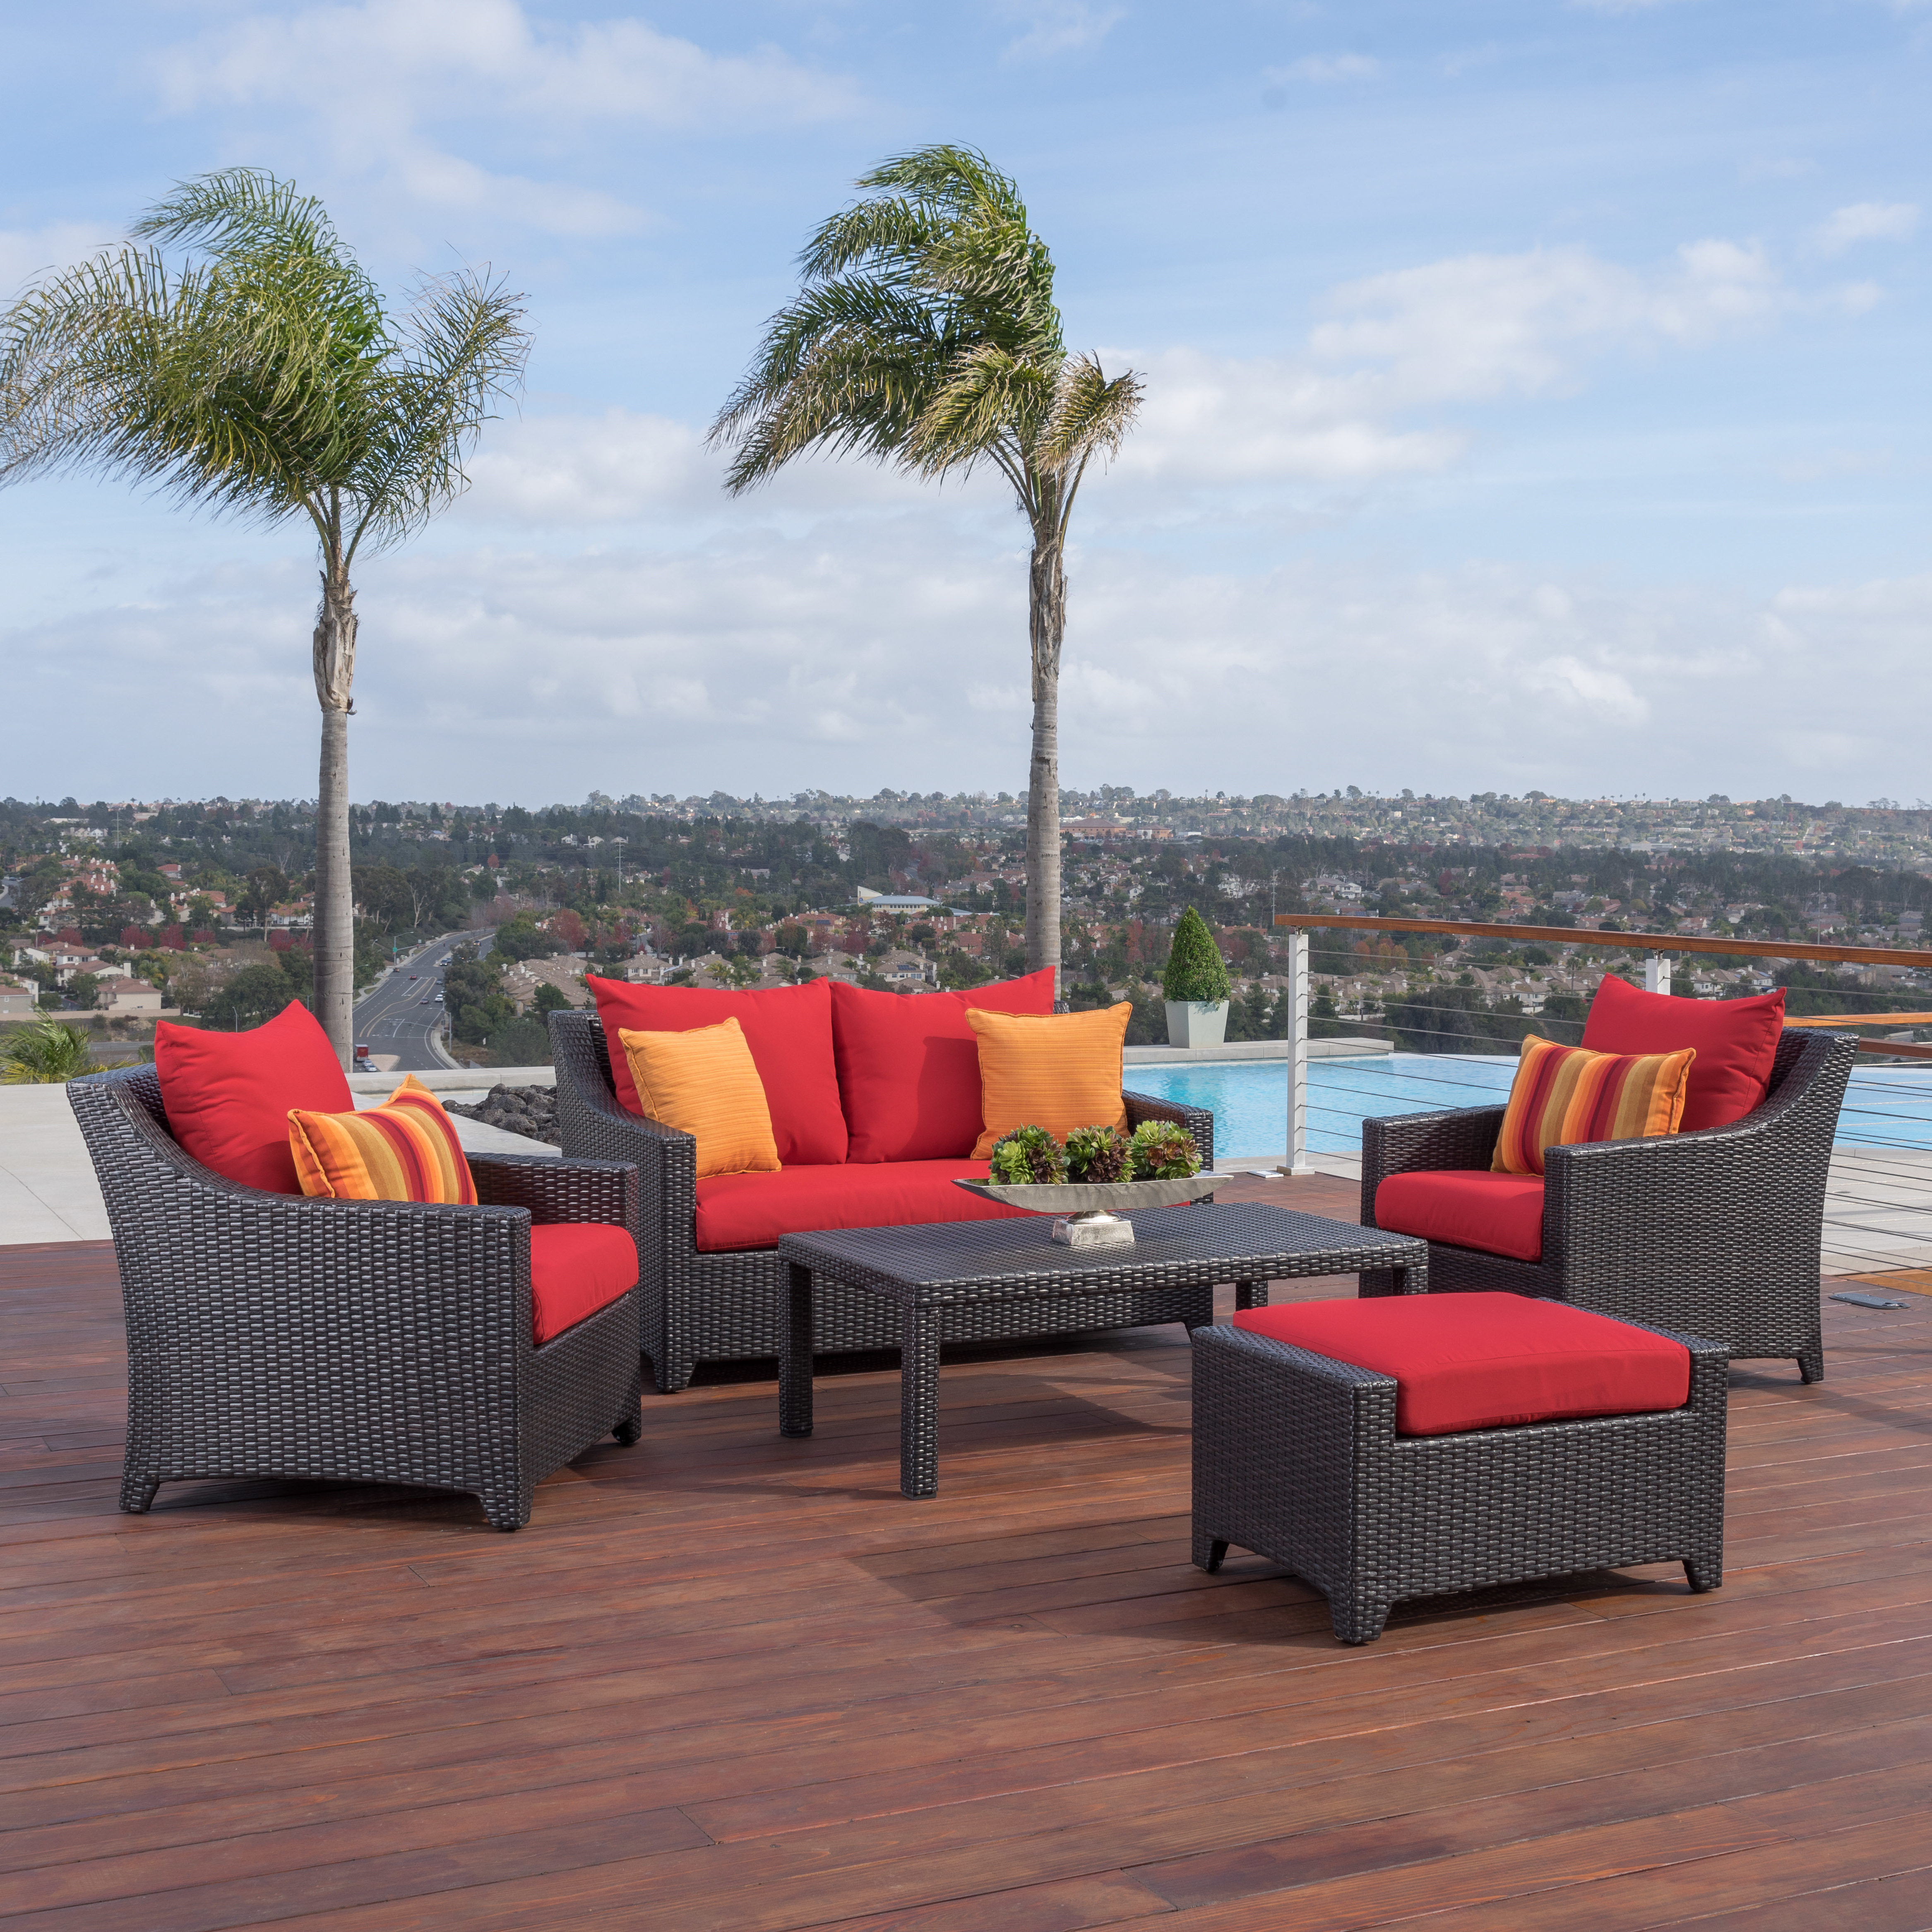 Northridge Patio Sofas With Sunbrella Cushions Pertaining To Most Current Northridge 5 Piece Sunbrella Sofa Set With Cushions (View 14 of 20)